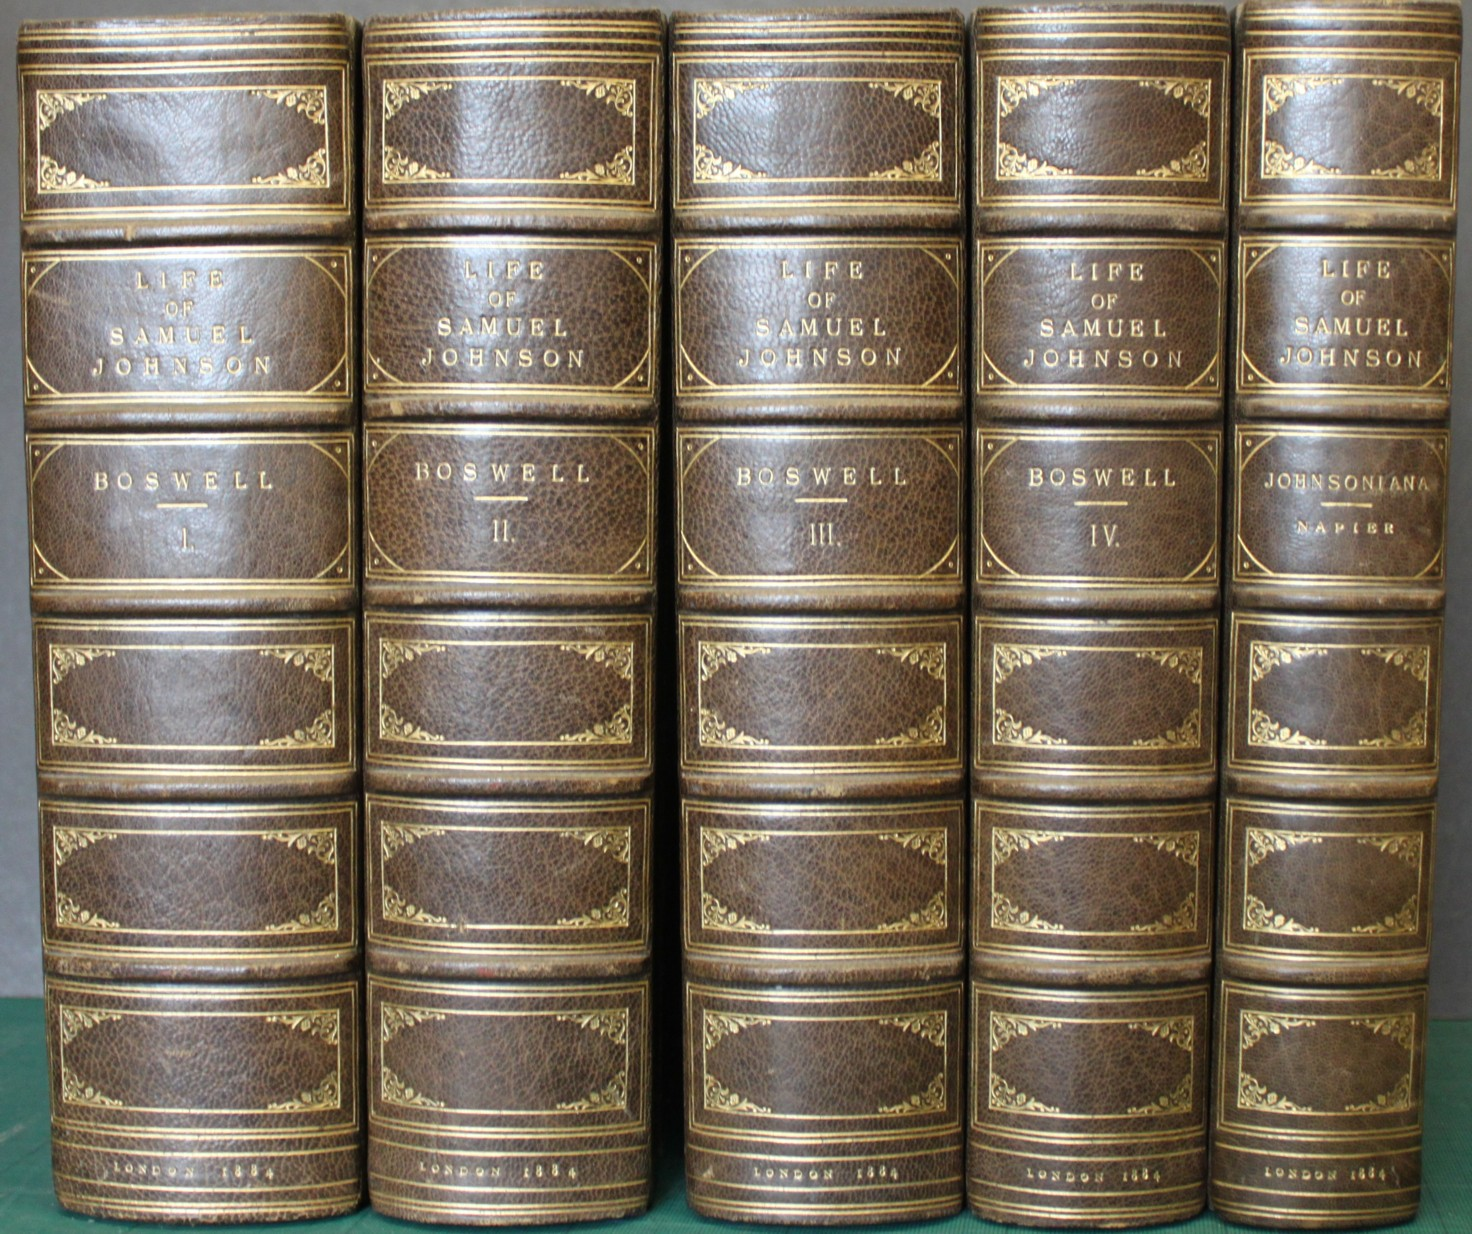 Image for The Life of Samuel Johnson, LL.D. Together With The Journal of a Tour to the Hebrides. New Editions with Notes and Appendices by Alexander Napier. [4 volumes]  [WITH] Johnsoniana. Anecdotes of the Late Samuel Johnson LL.D. by Mrs Piozzi, Richard Cumberland, Bishop Percy and Others; Together With the Diary of Dr. Campbell and Extracts From That of Madame D'Arblay, Newly Collected and Edited by Robina Napier. [1 volume]